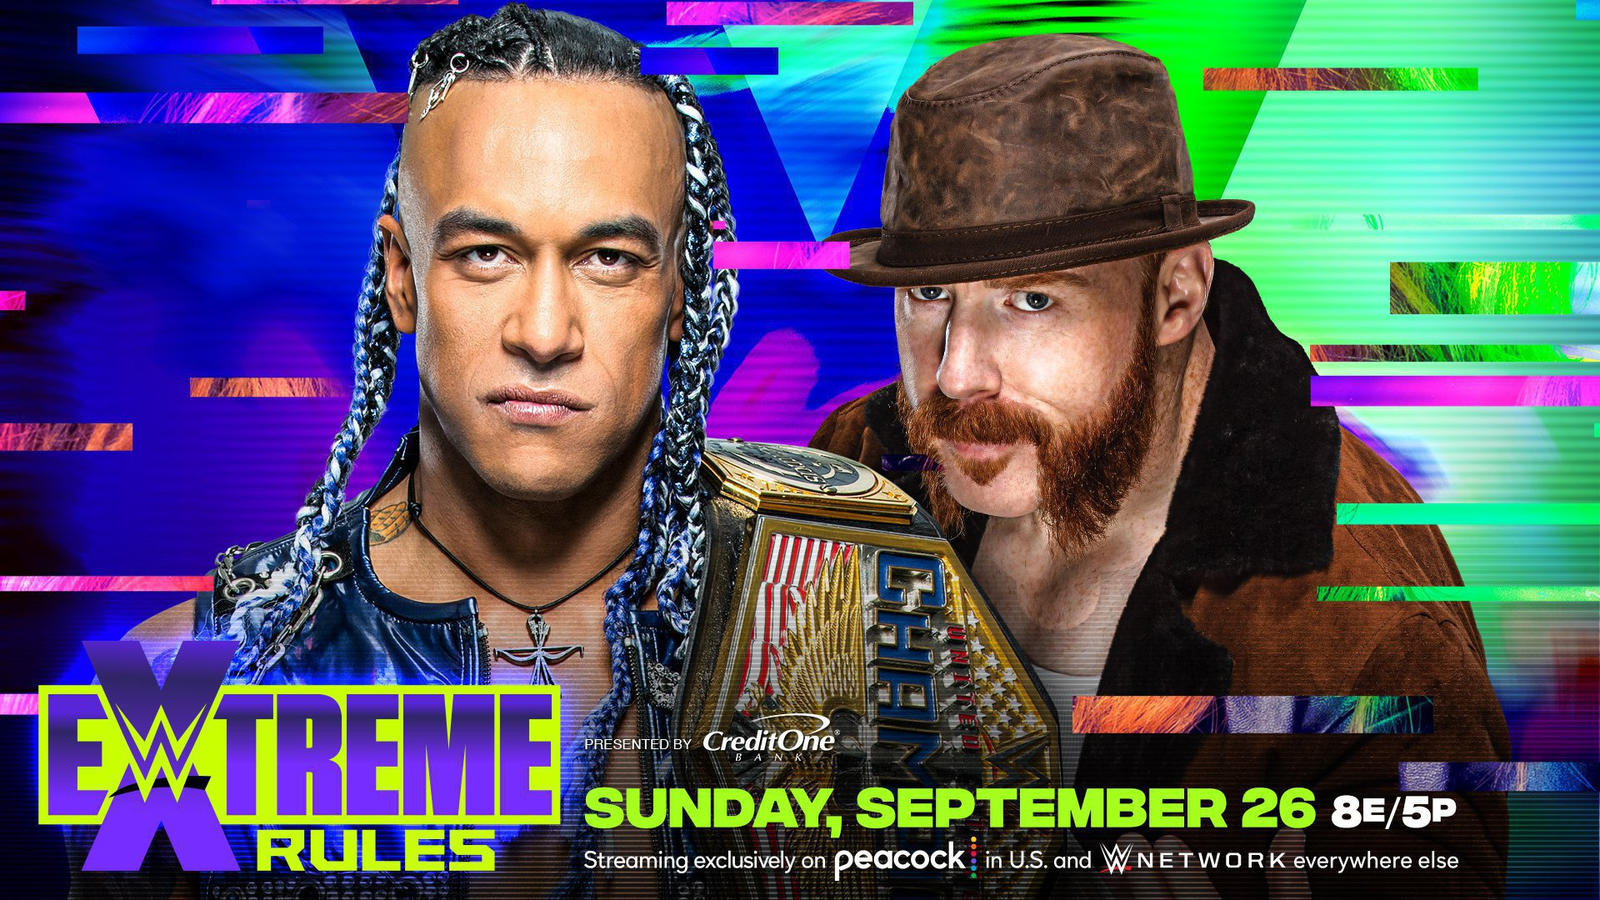 Damian Priest To Defend Against Sheamus At Extreme Rules